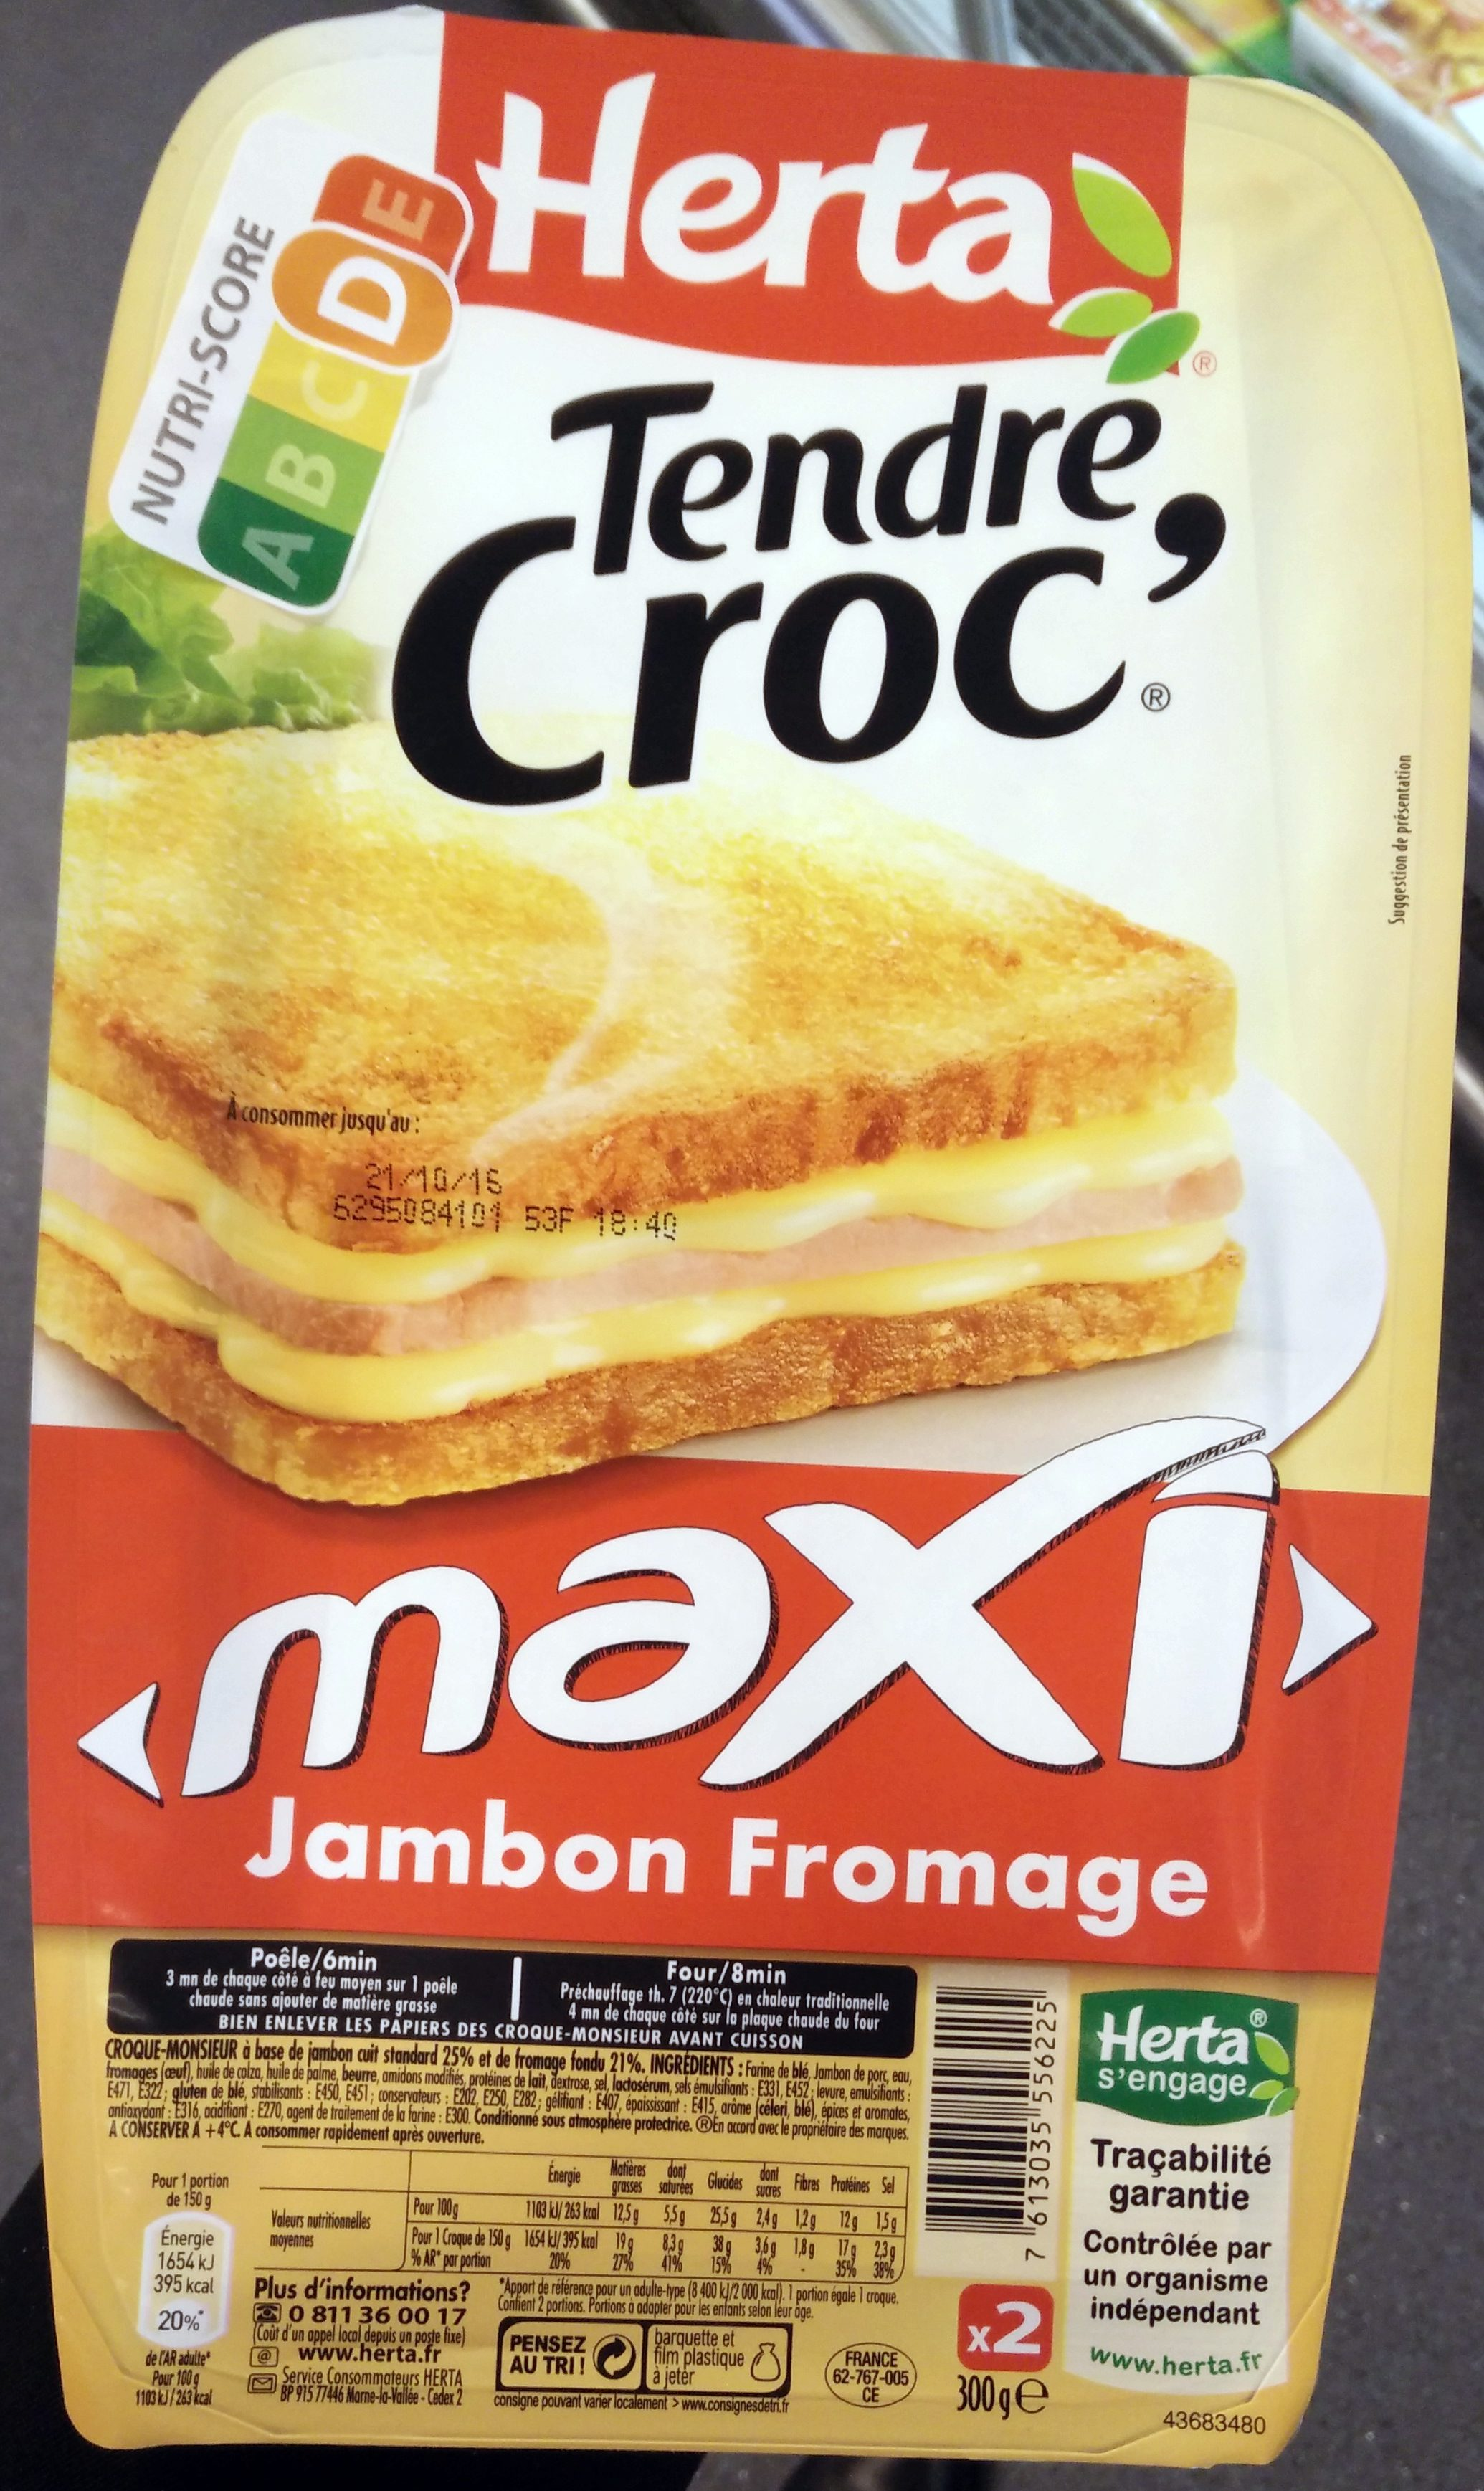 Tendre croc' - maxi jambon fromage - Product